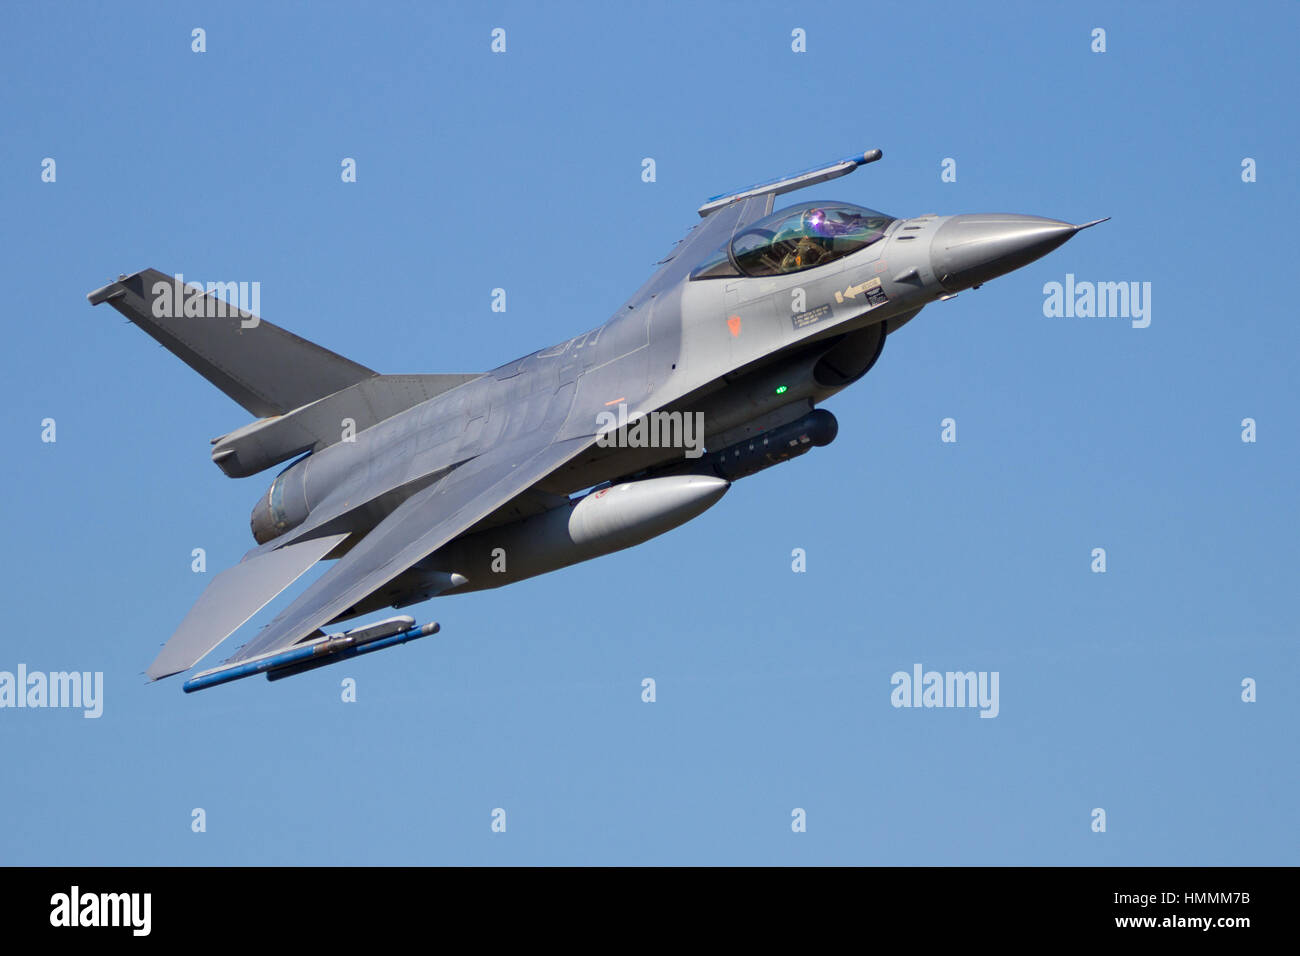 F-16 fighter jet making a fast and low flyby - Stock Image